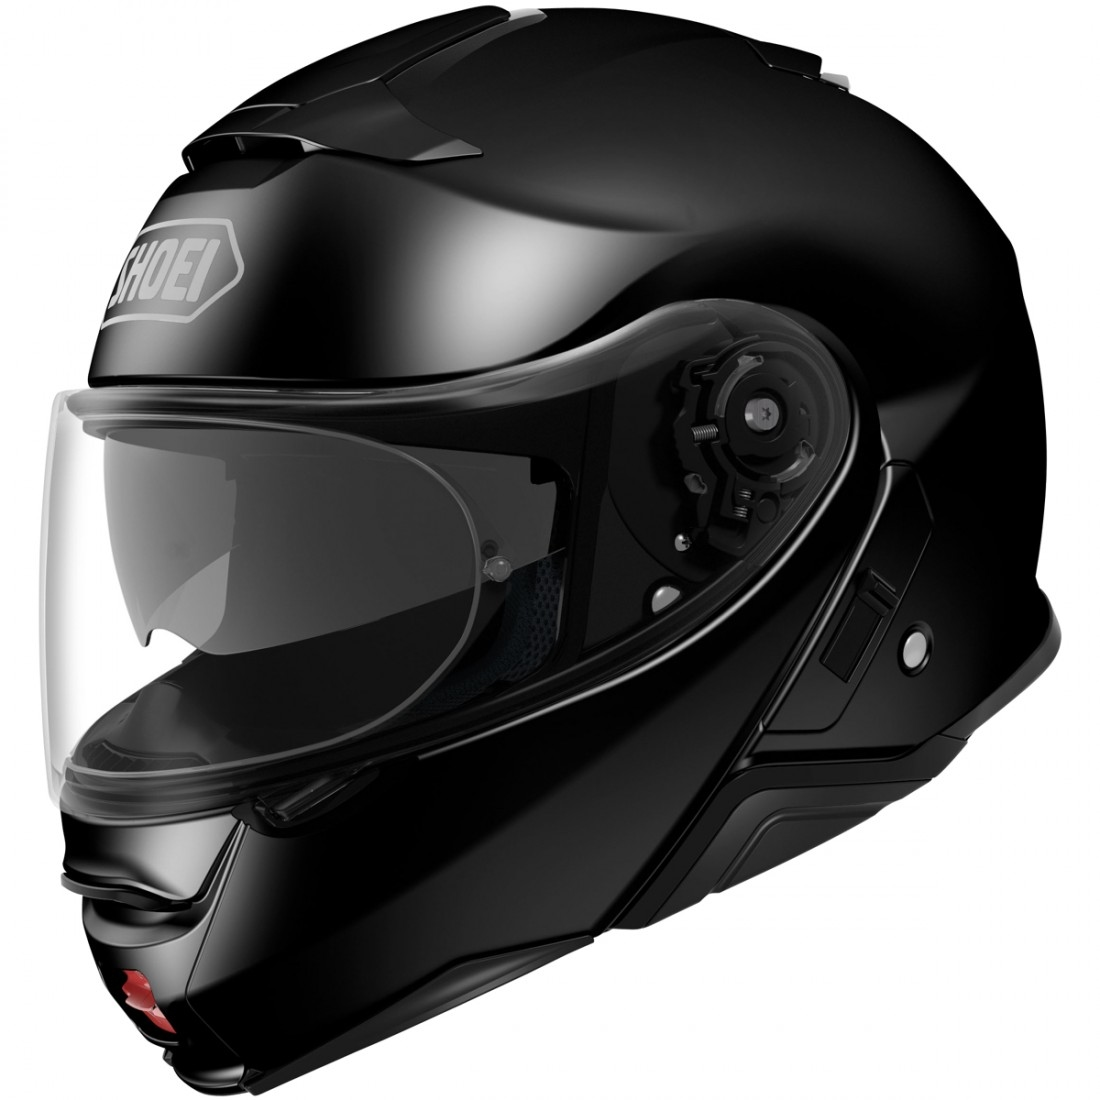 Shoei Neotec 2 Full Face Motosiklet Kaskı